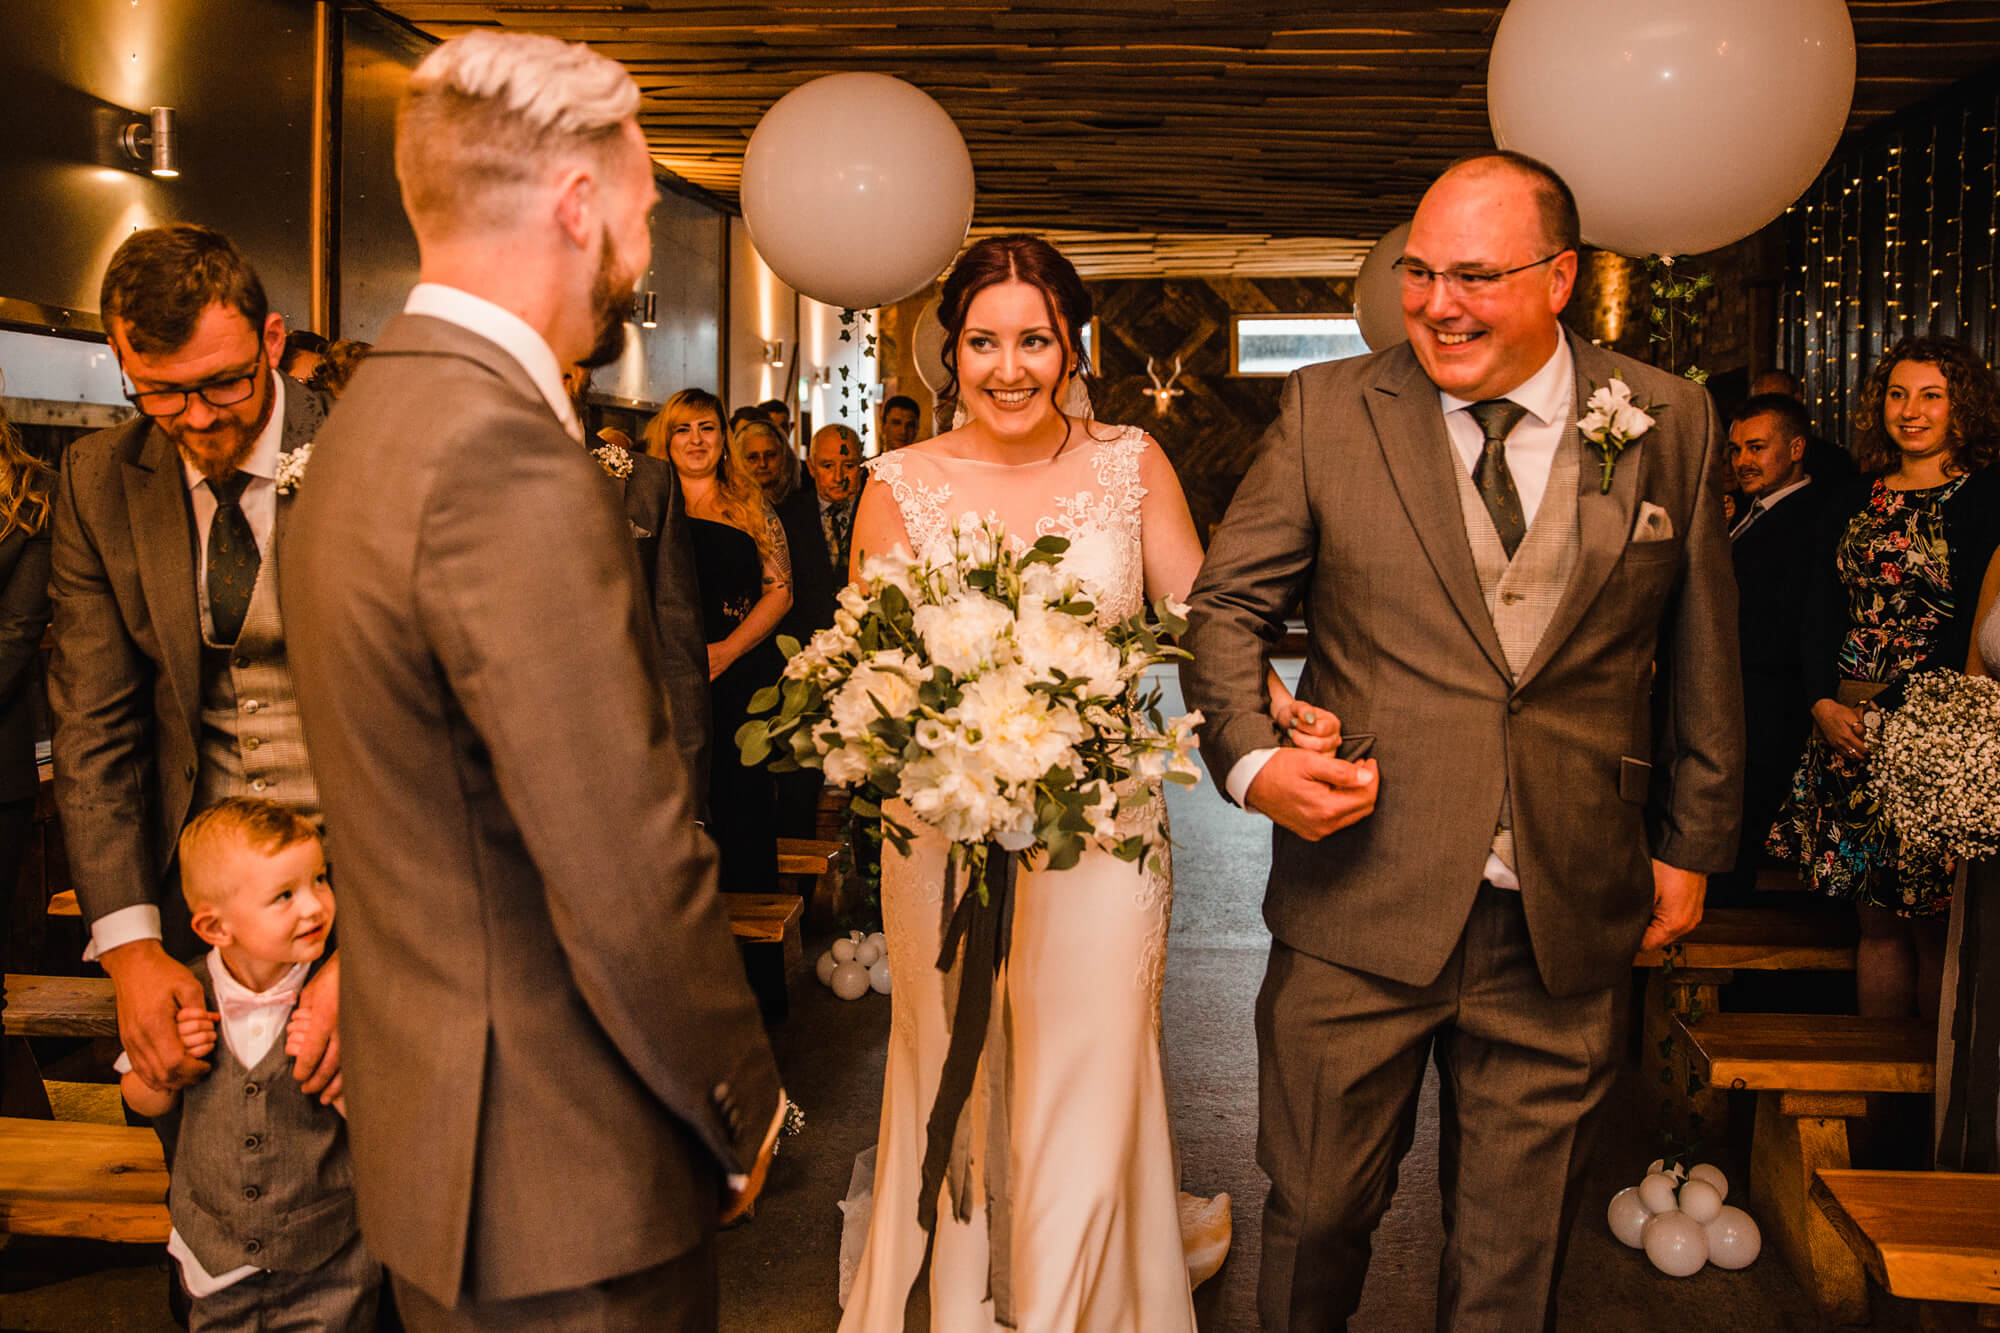 close up photograph of bride walking down aisle to be greeted by groom in forground